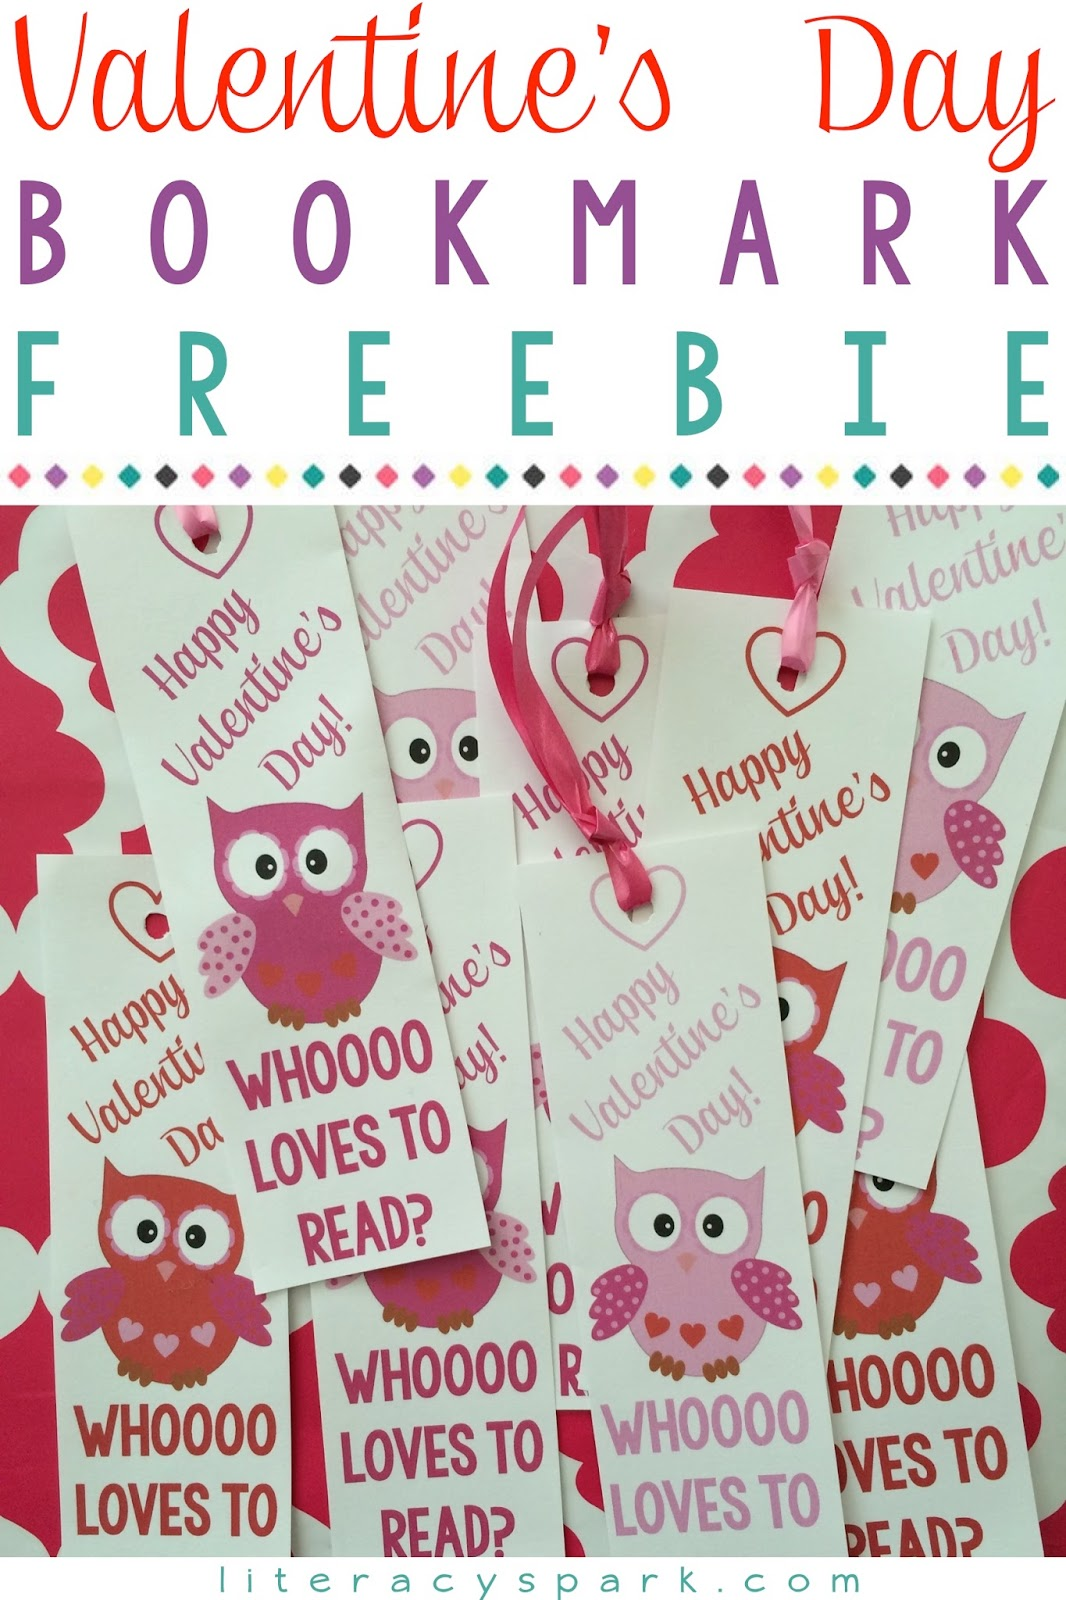 hodgepodge of valentine freebies literacy spark